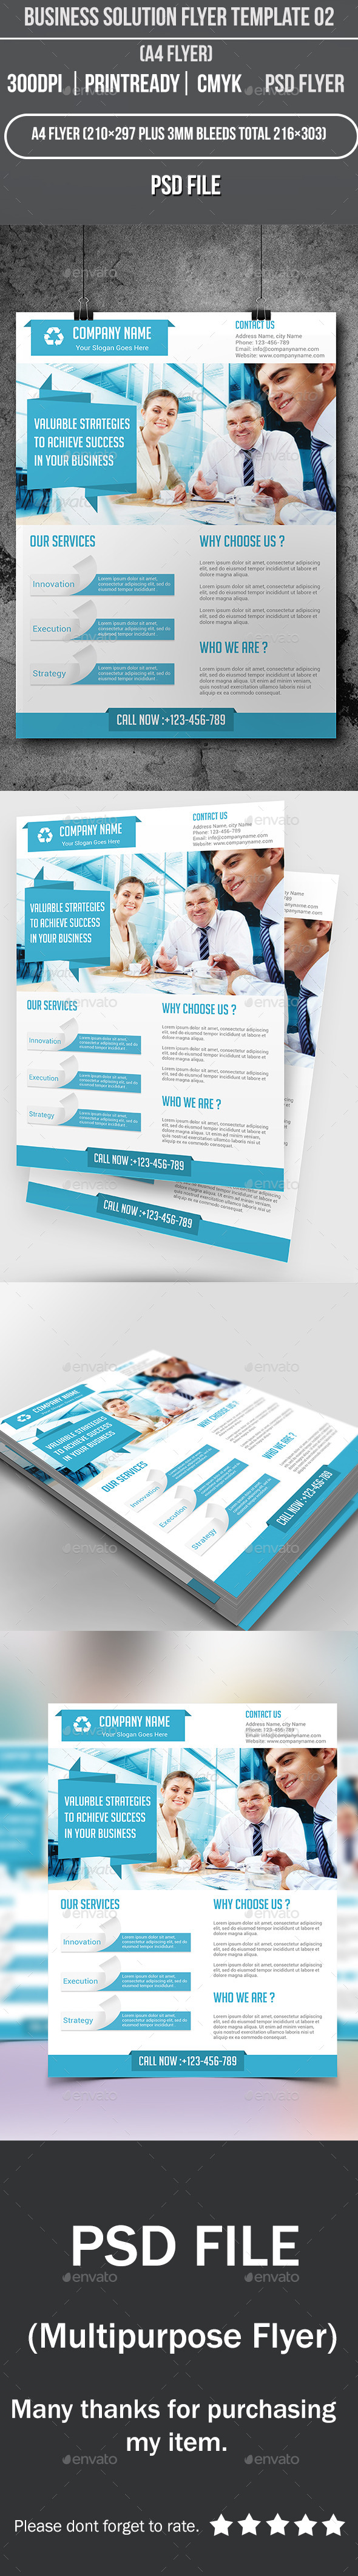 GraphicRiver Business Solution Flyer Template 02 9190783